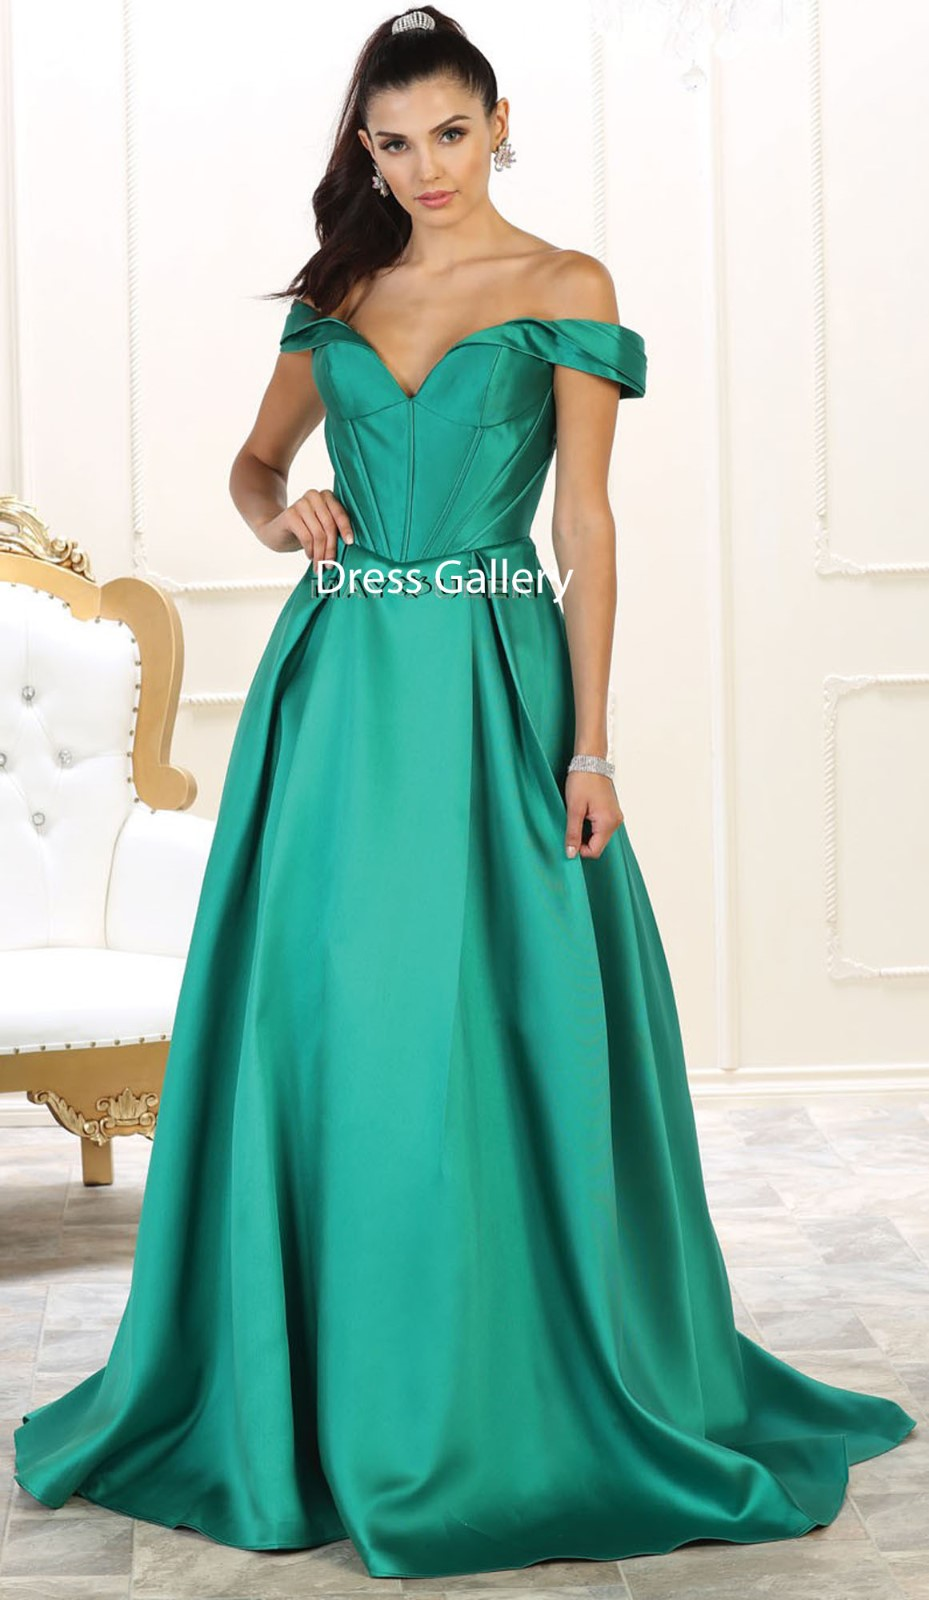 Dance Evening Dresses Gala Prom Ball Gown Formal Occasion ...